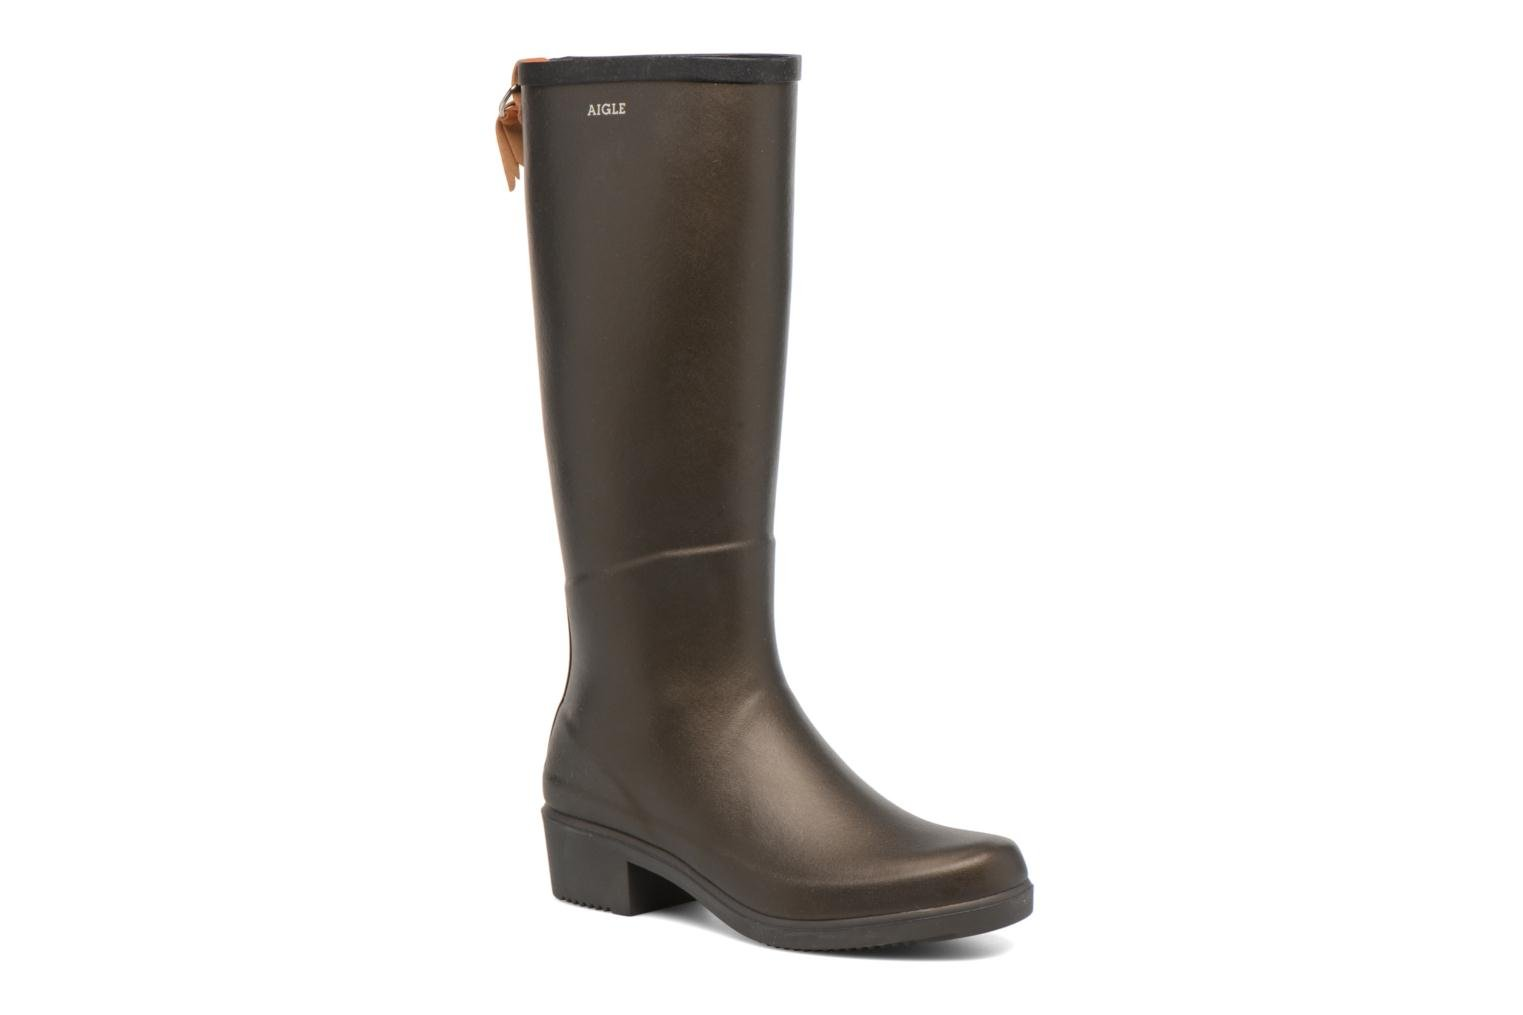 Aigle Miss Juliette A (Or et bronze) - Bottes en Más cómodo Super rabais